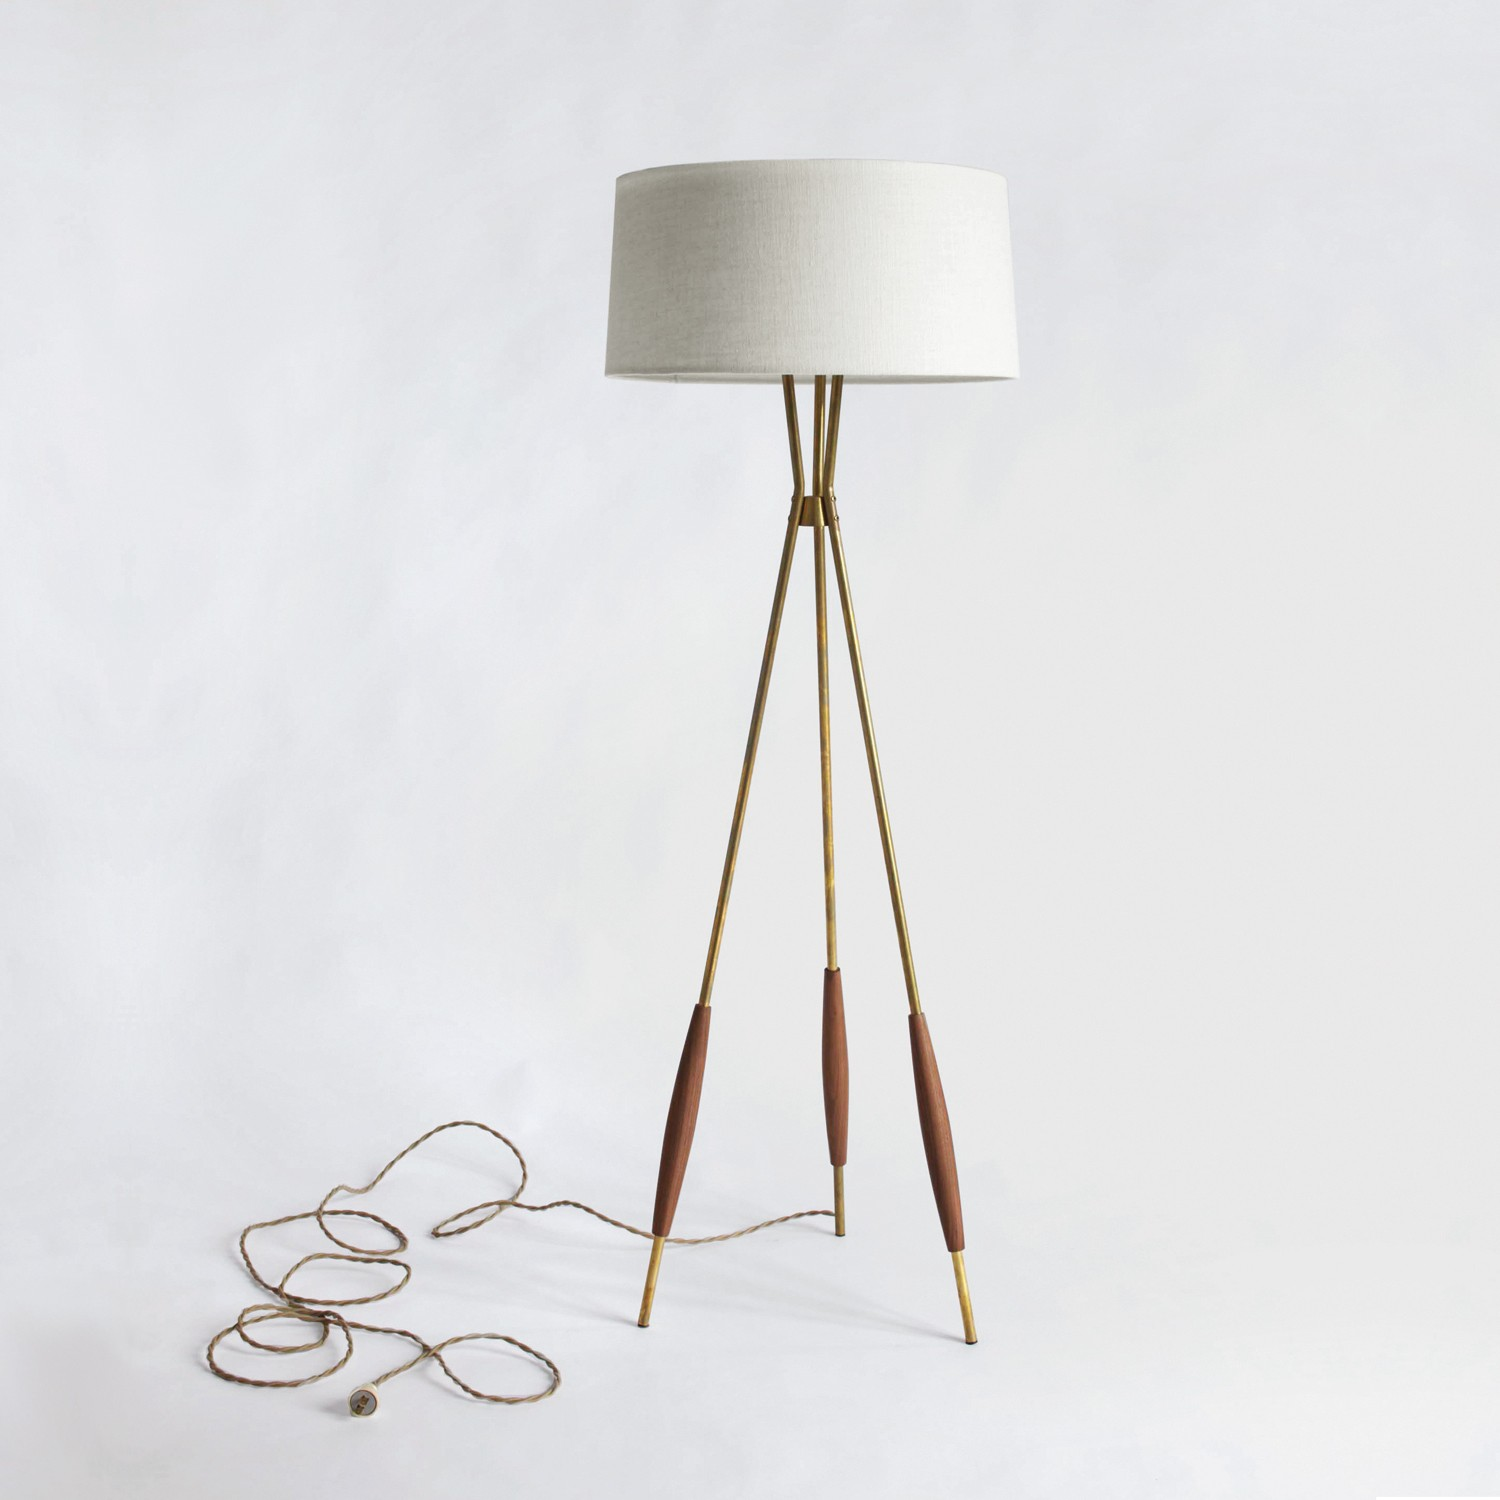 Adjustable Arm Floor Lamp | Tripod Lamp | Tripod Wooden Floor Lamp